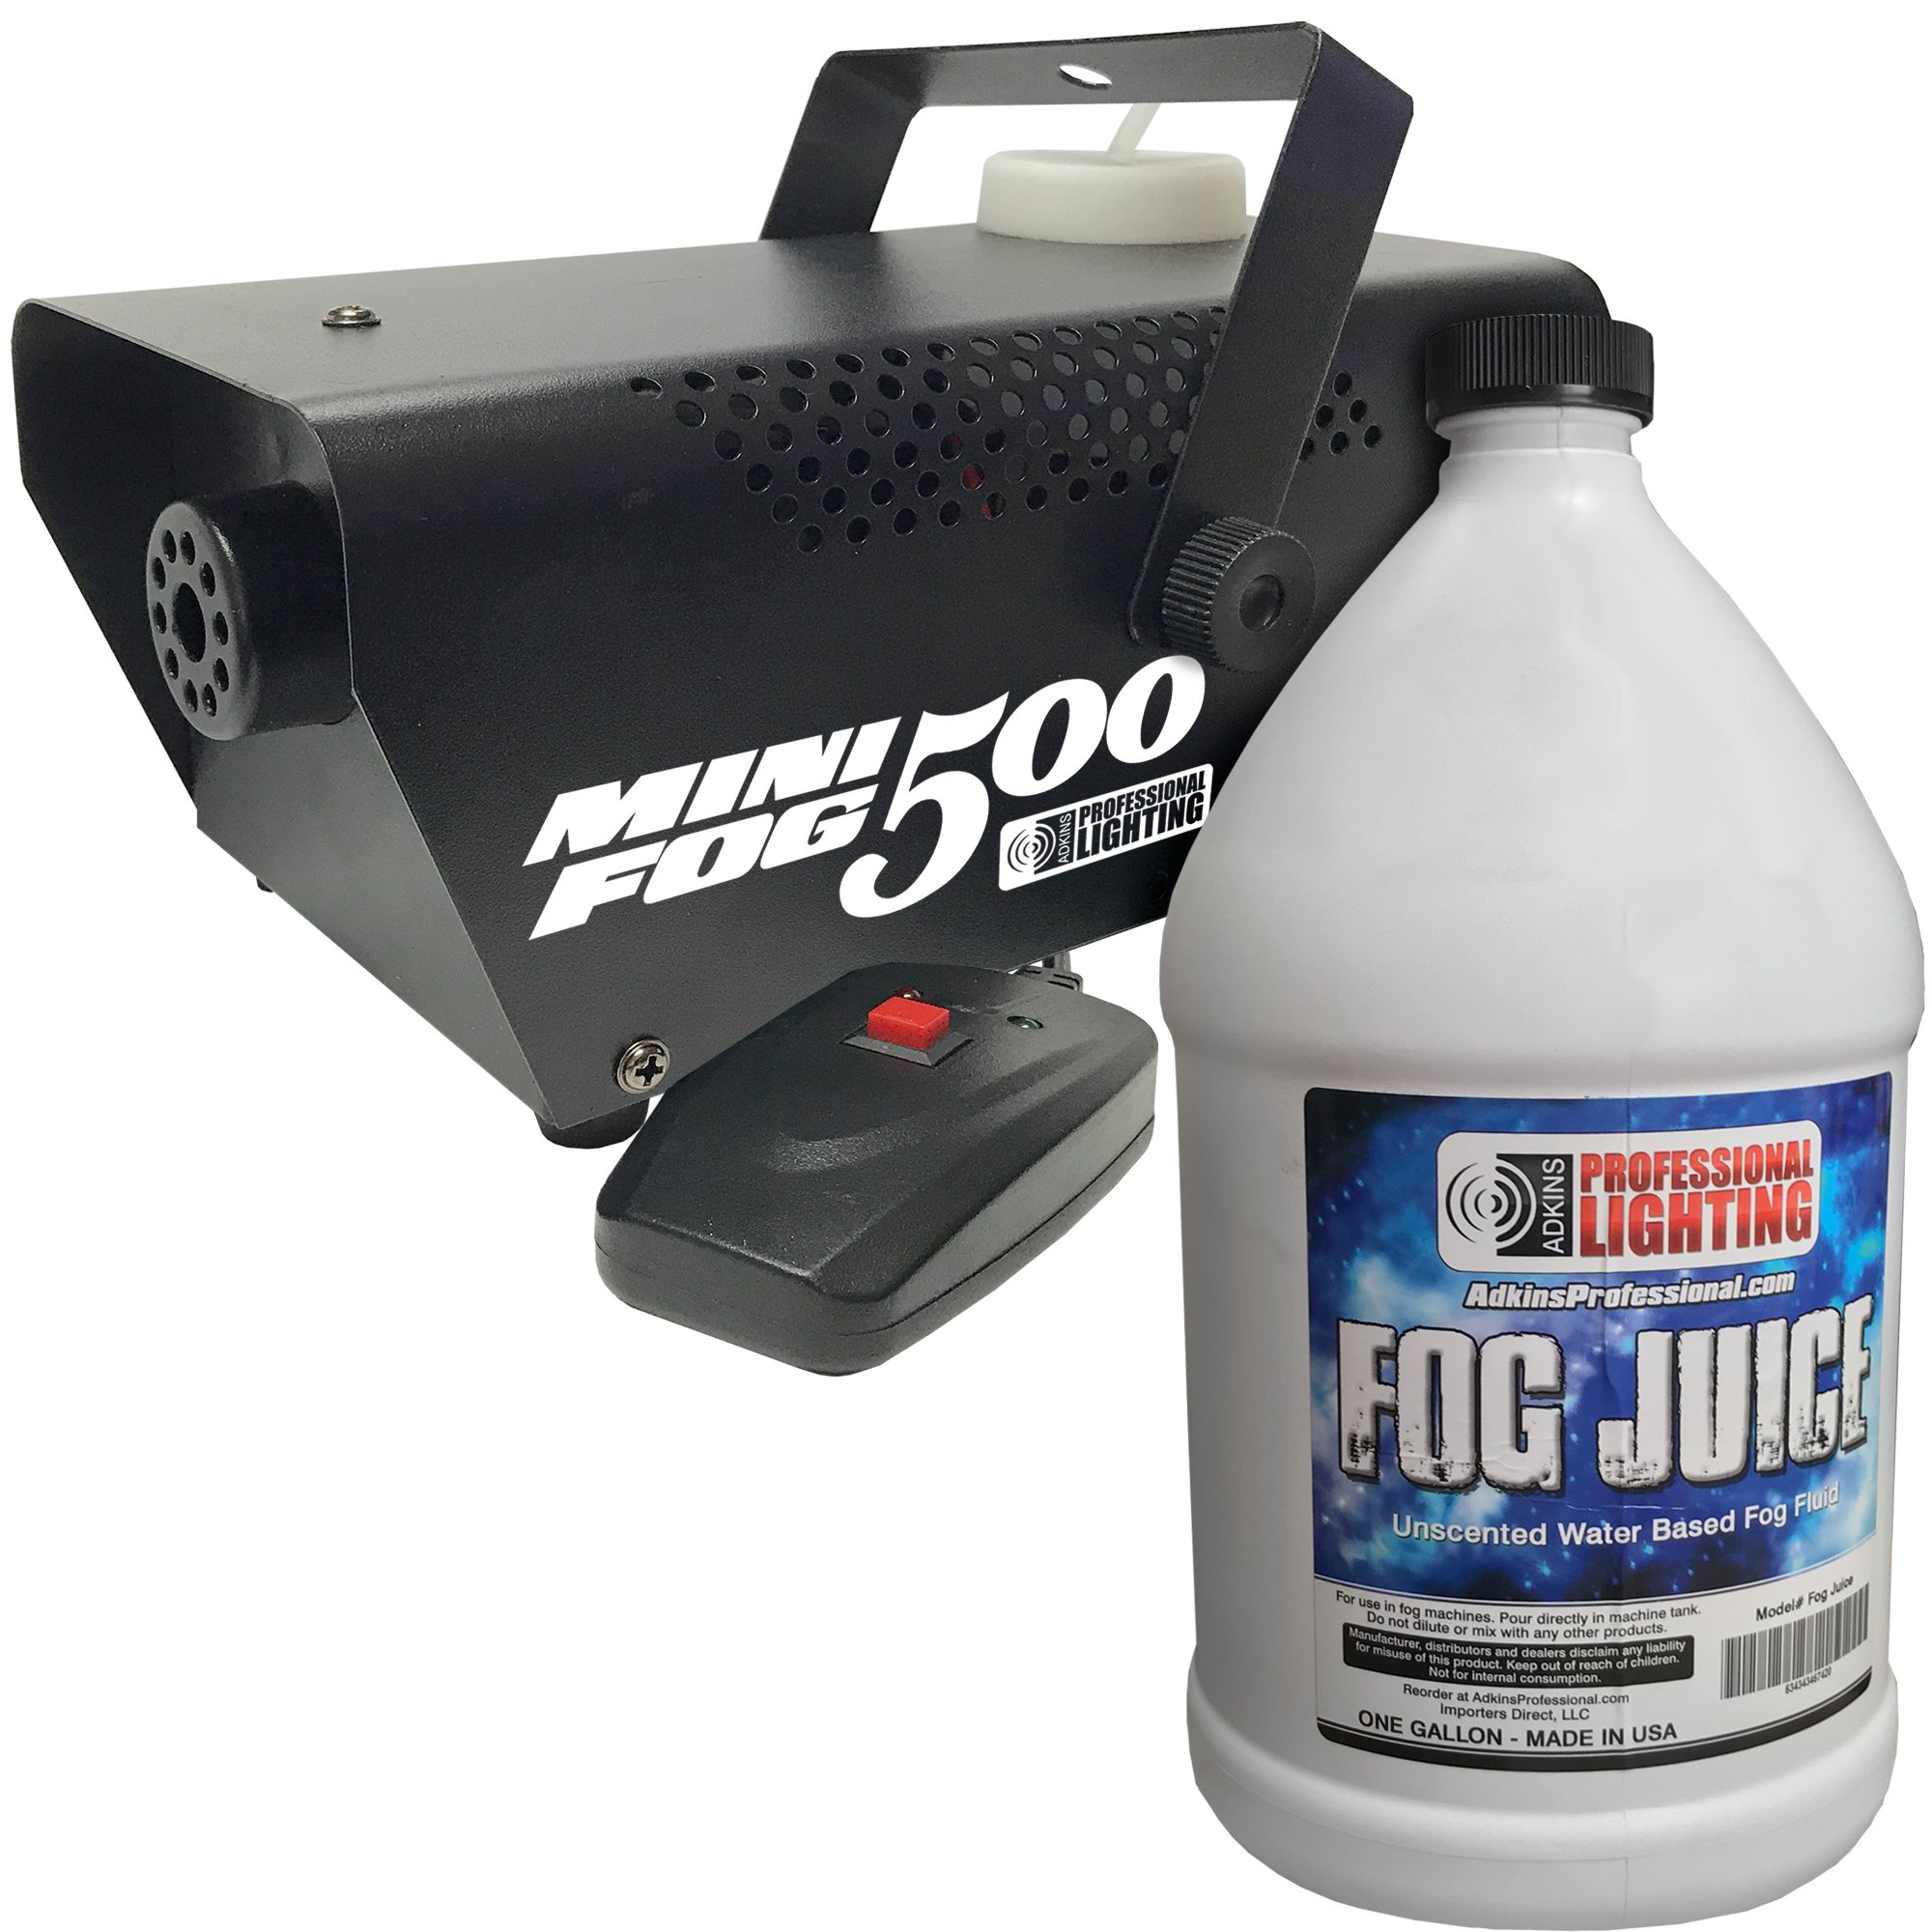 Fog Machine - 500 Watt Mini Fog Machine with Remote and 1 Gallon Fog Juice - Impressive 2,000 Cubic ft. per minute by Adkins Profesional Lighting